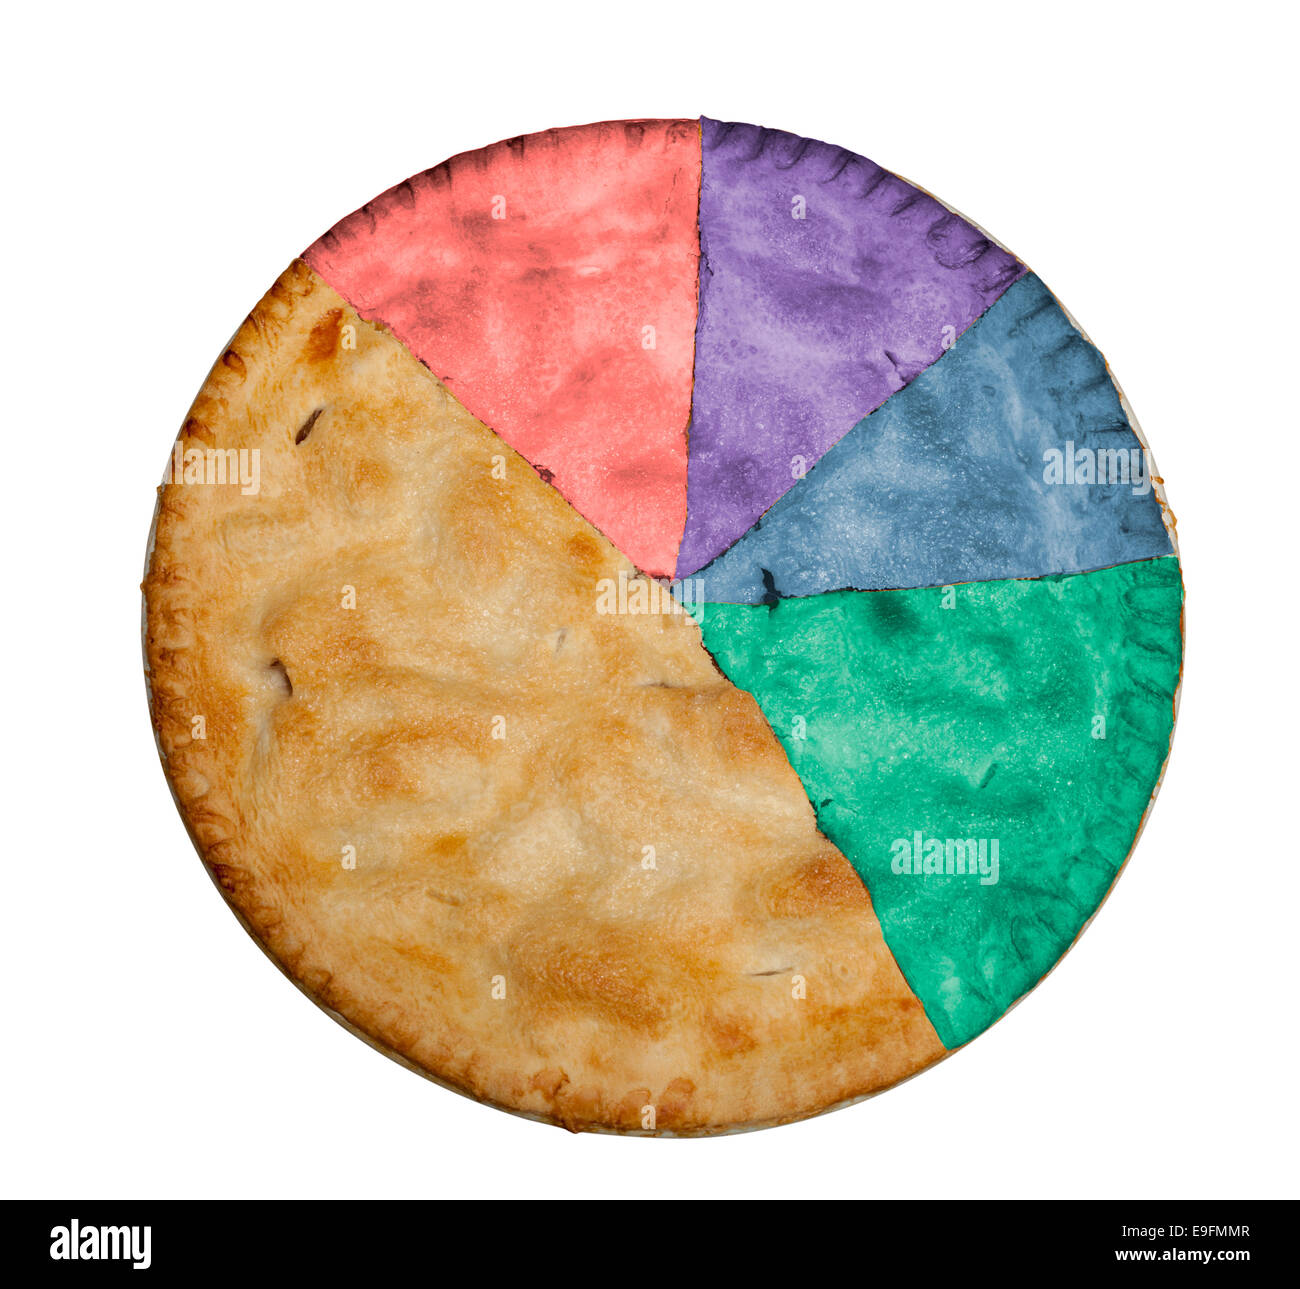 Pie Chart Food Isolated Stock Photos Pie Chart Food Isolated